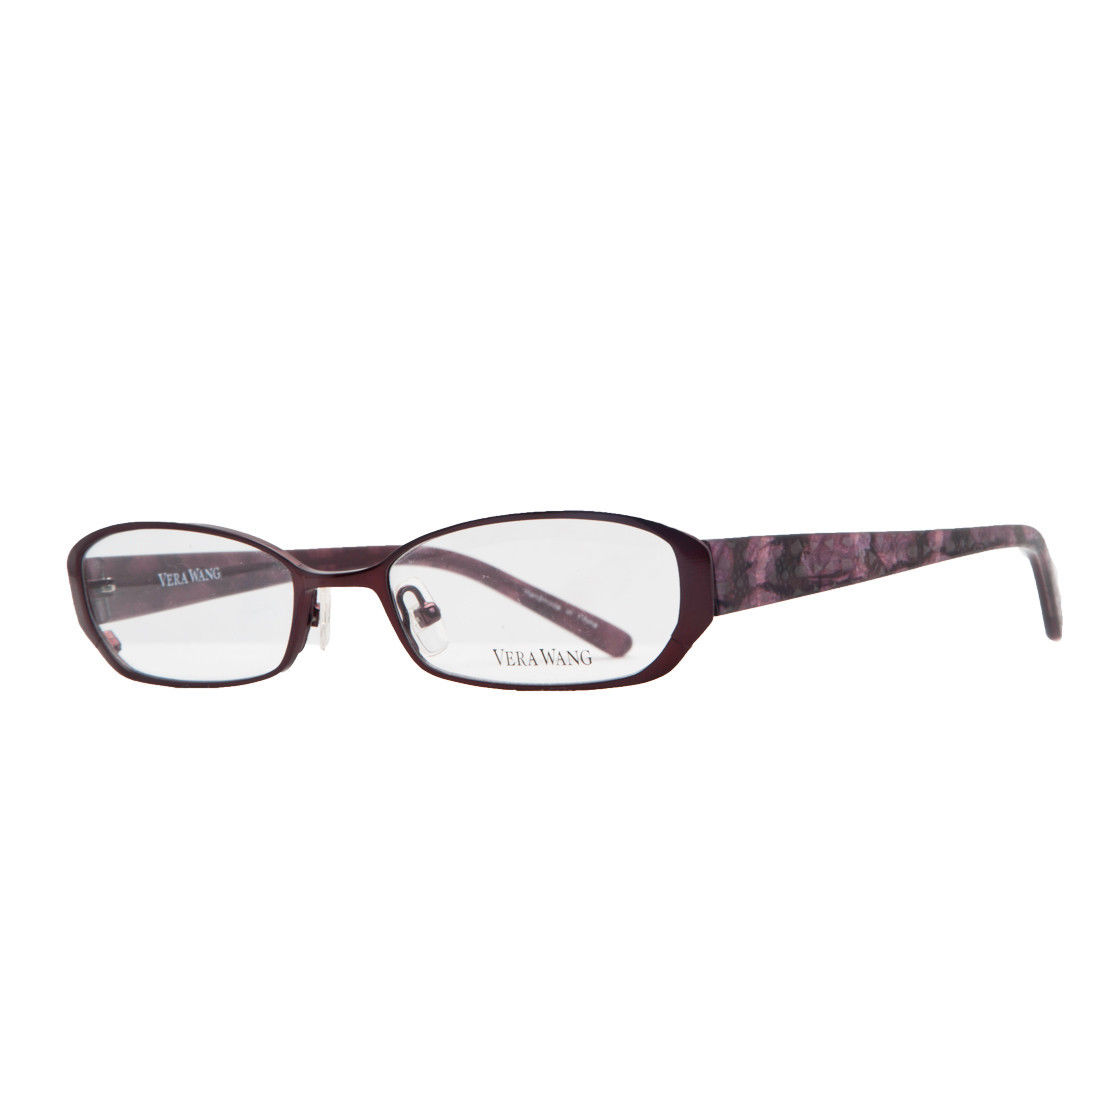 Vera Wang V 047 RD 50 Red Full Rim Womens Optical Frame